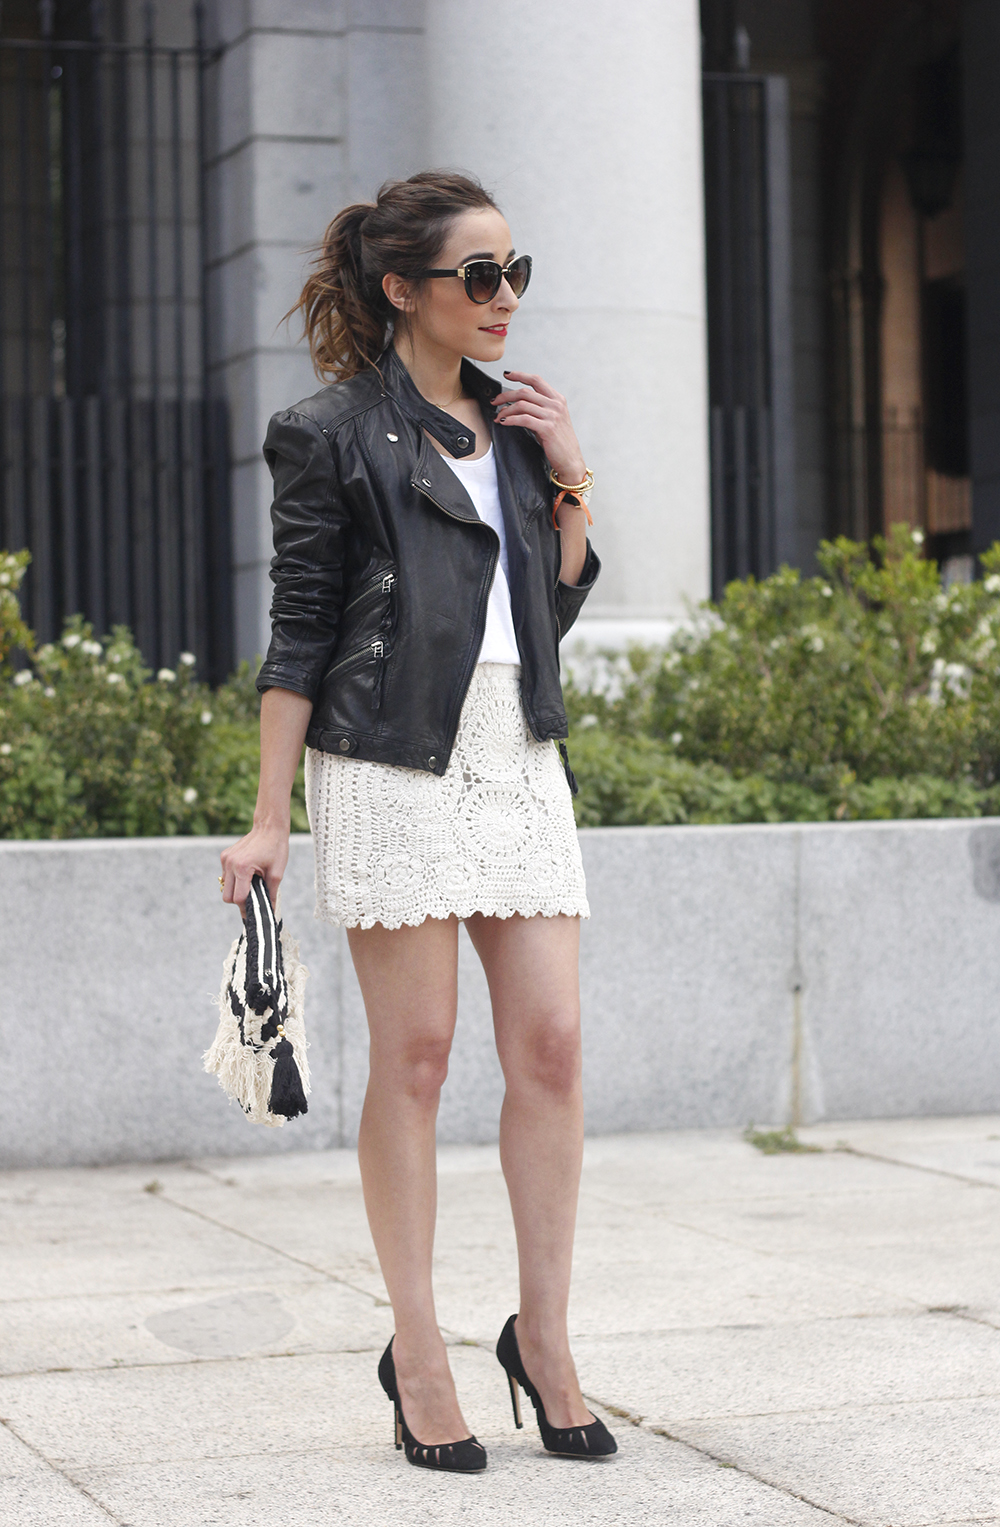 crochet skirt leather jacket black heels sunnies spring outfit style14